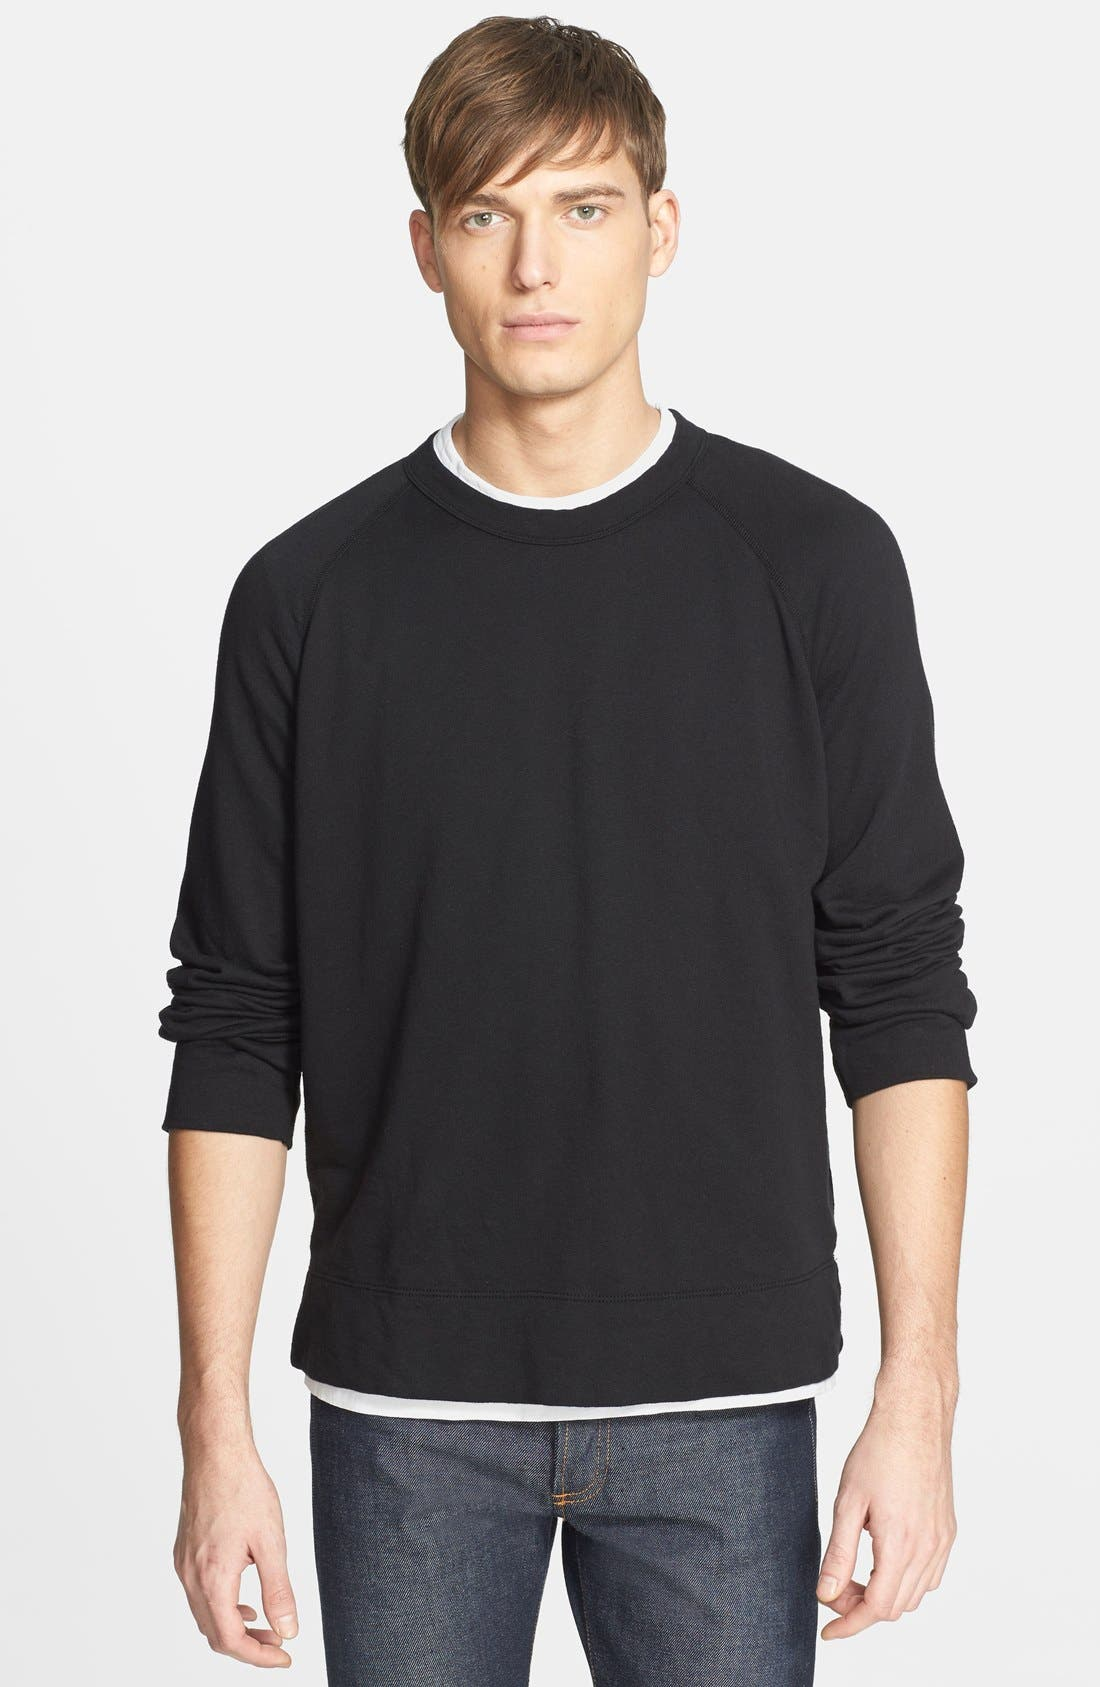 Alternate Image 1 Selected - James Perse Raglan Crewneck Sweatshirt